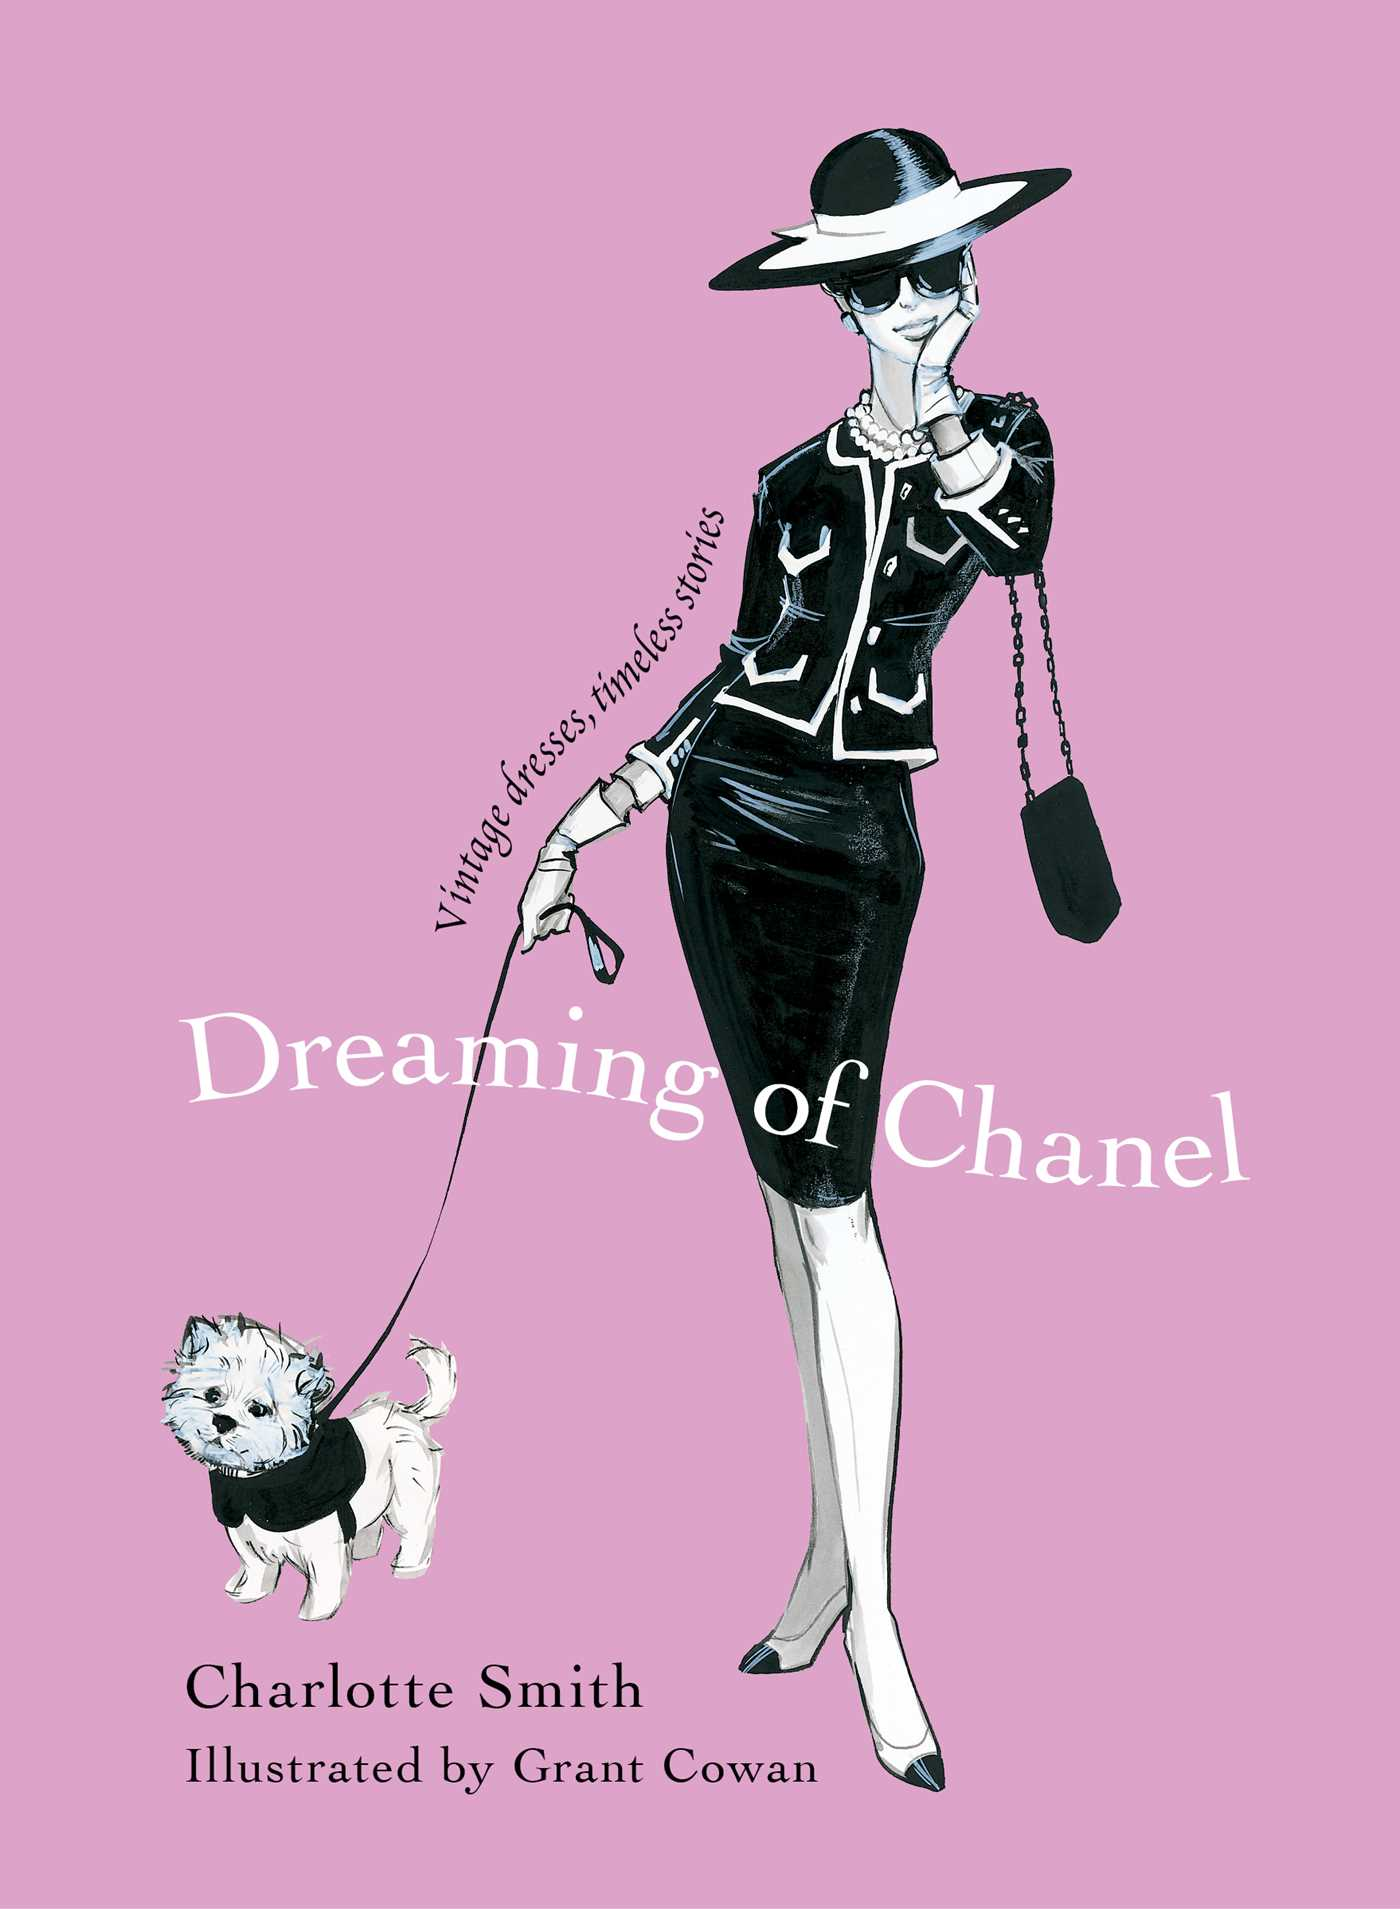 Dreaming of chanel 9781451632989 hr